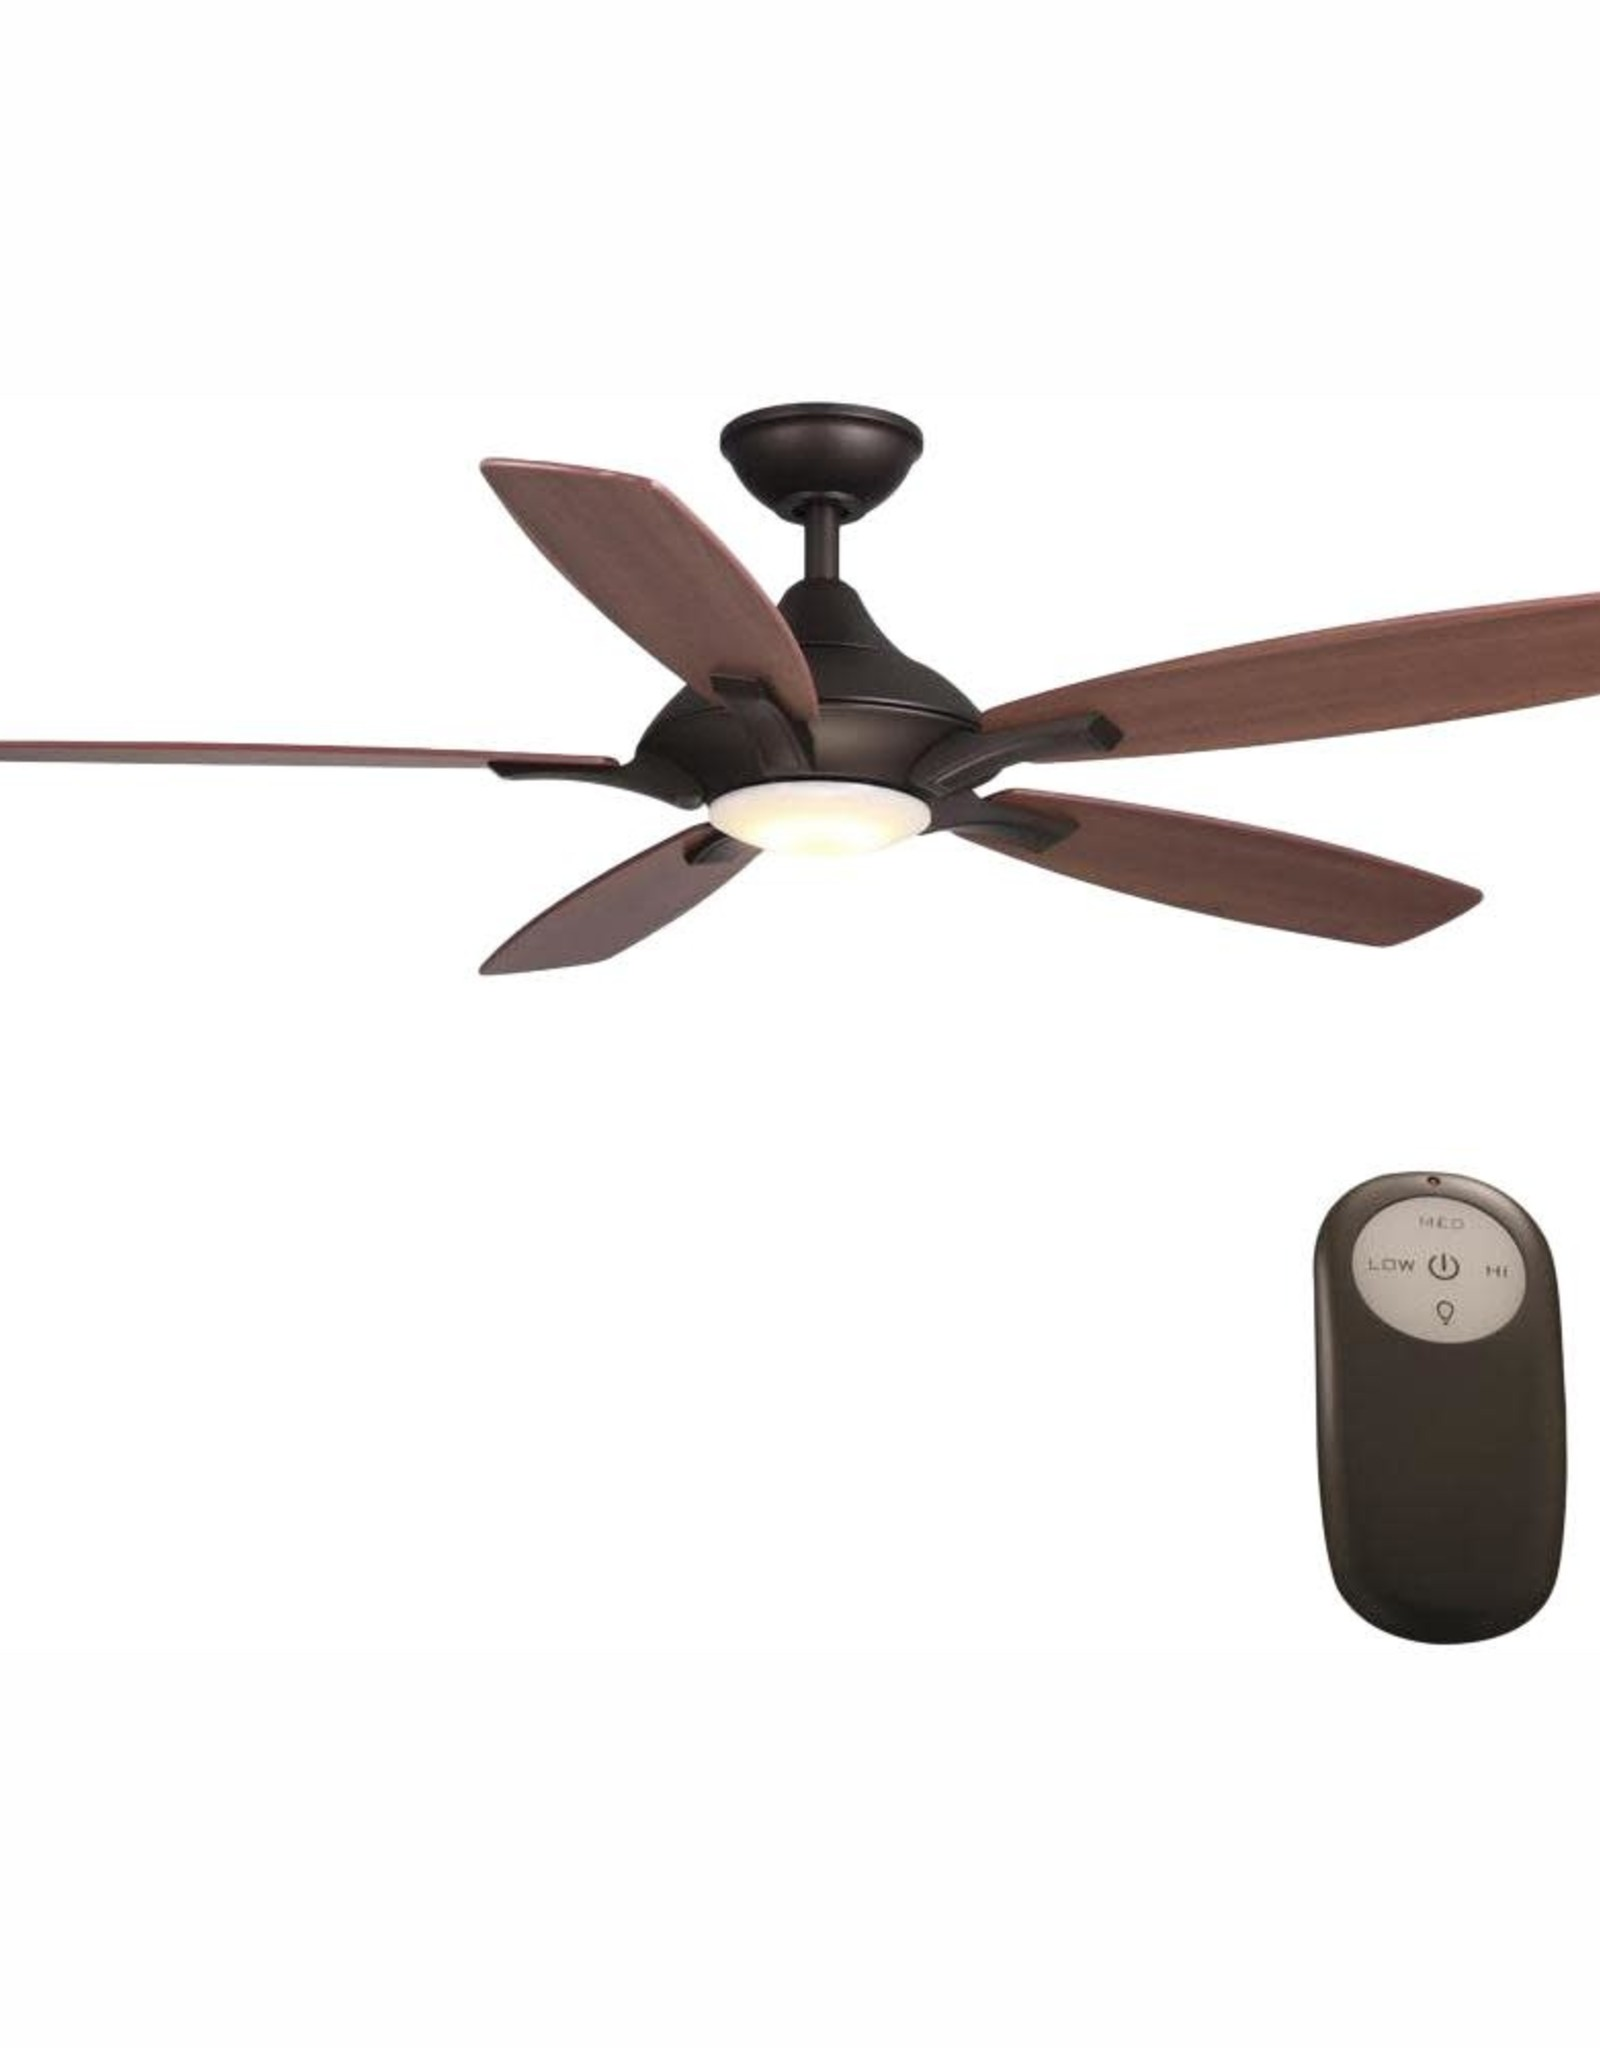 Home Decorators Collection Petersford 52 in. Integrated LED Indoor Oil Rubbed Bronze Ceiling Fan with Light Kit and Remote Control